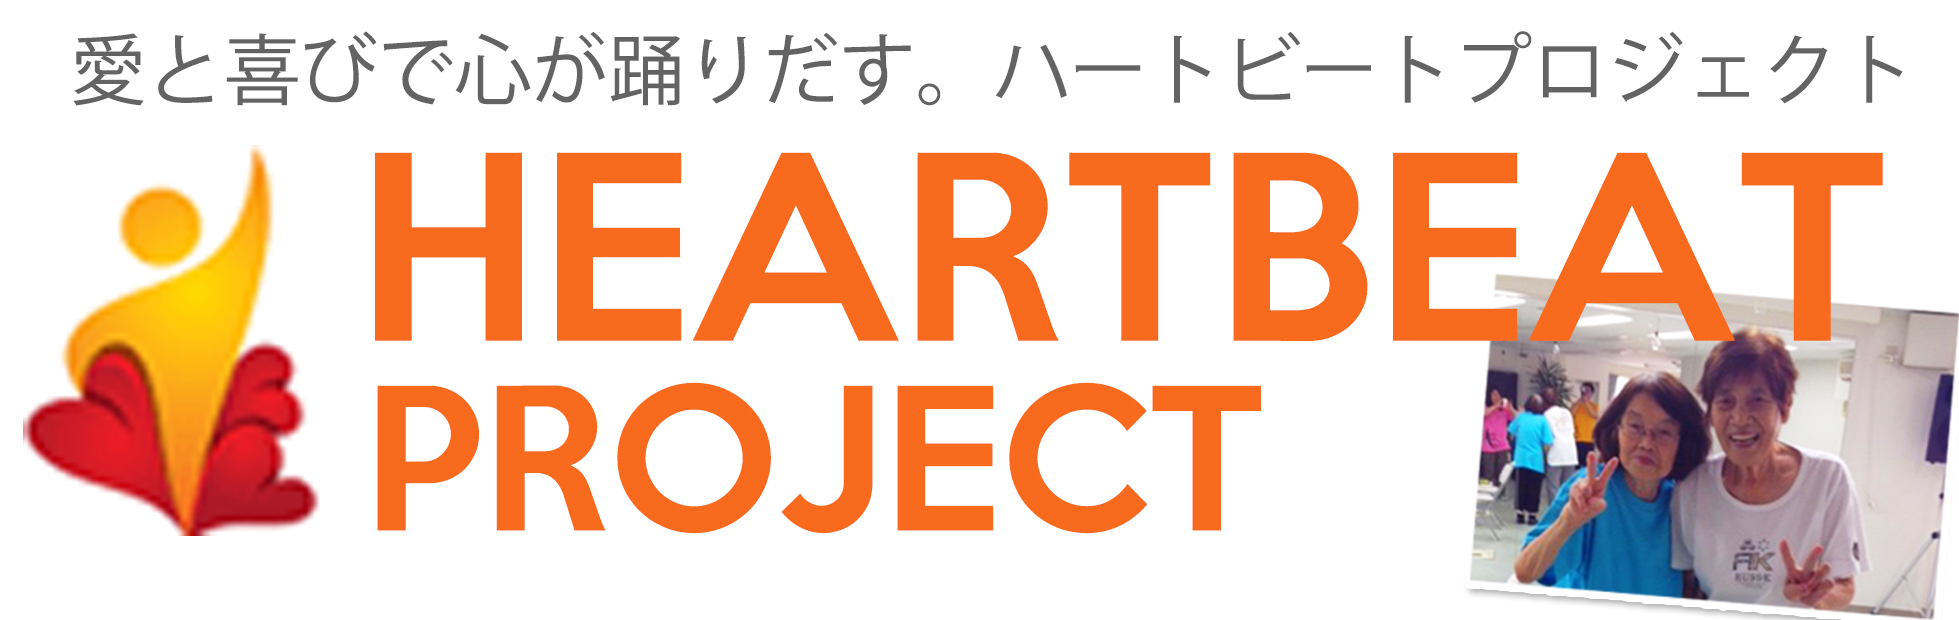 heartbeat-project